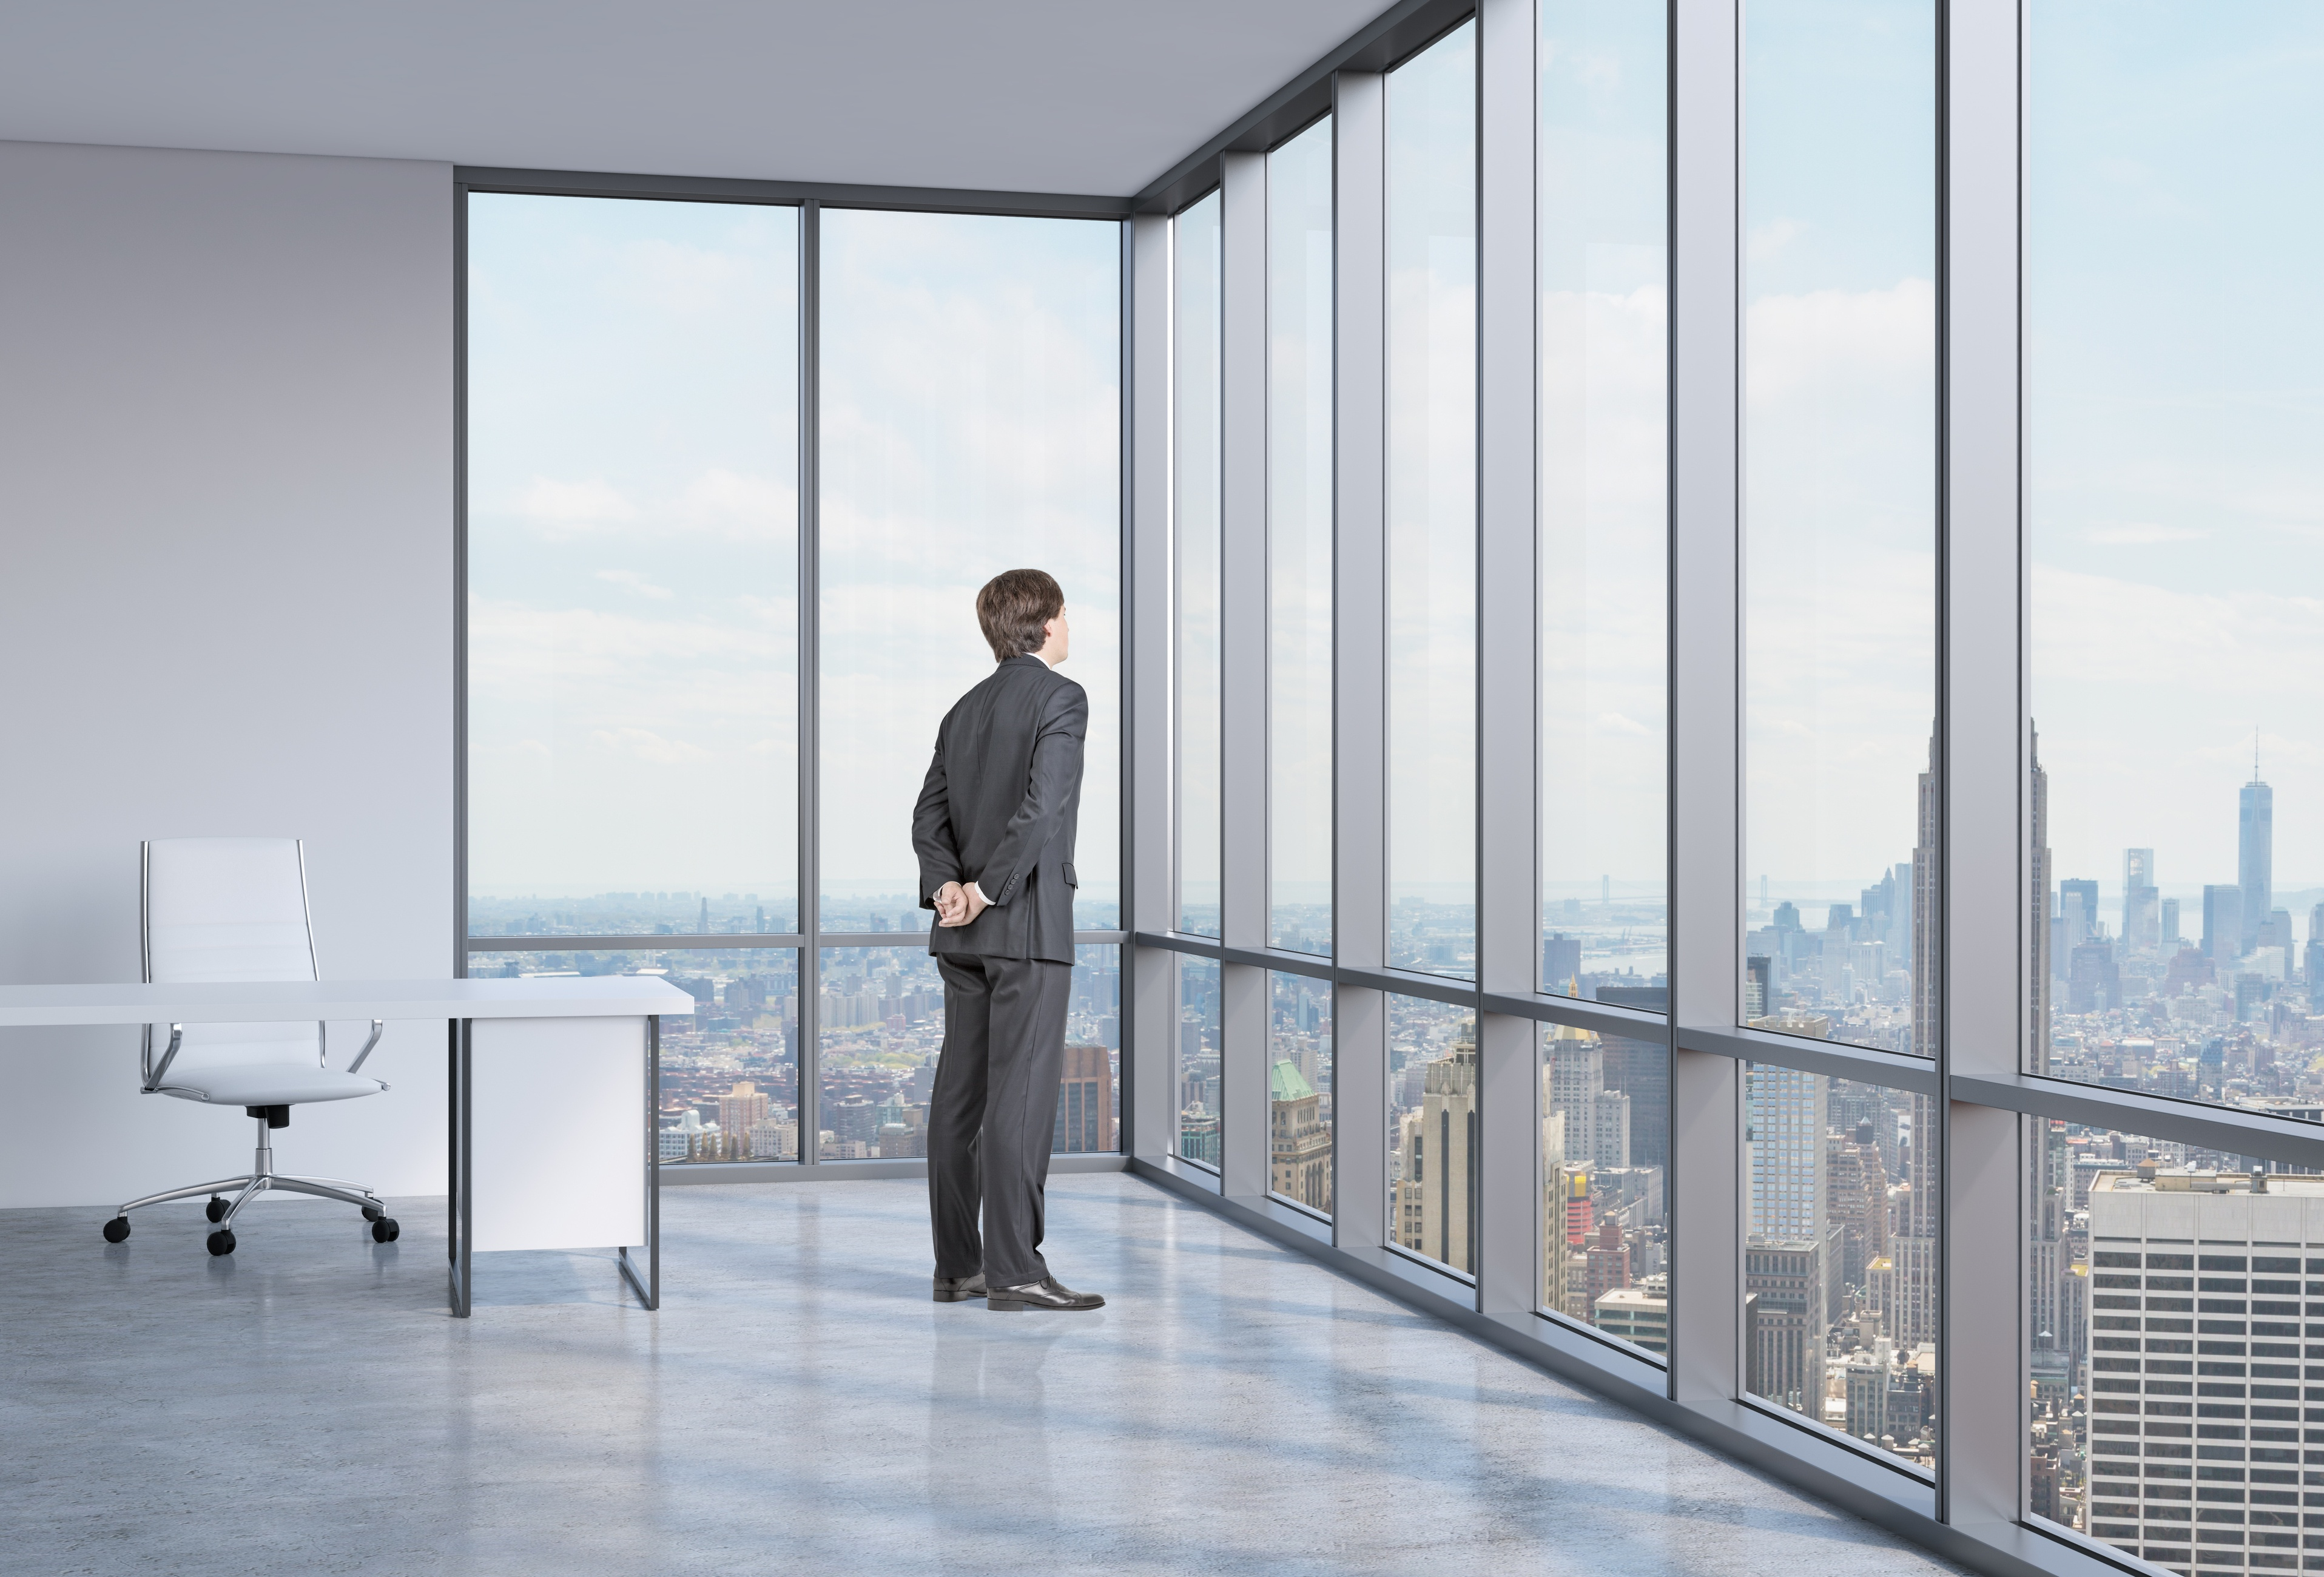 To know where the business world is headed, look at CIOs and the IT Department.